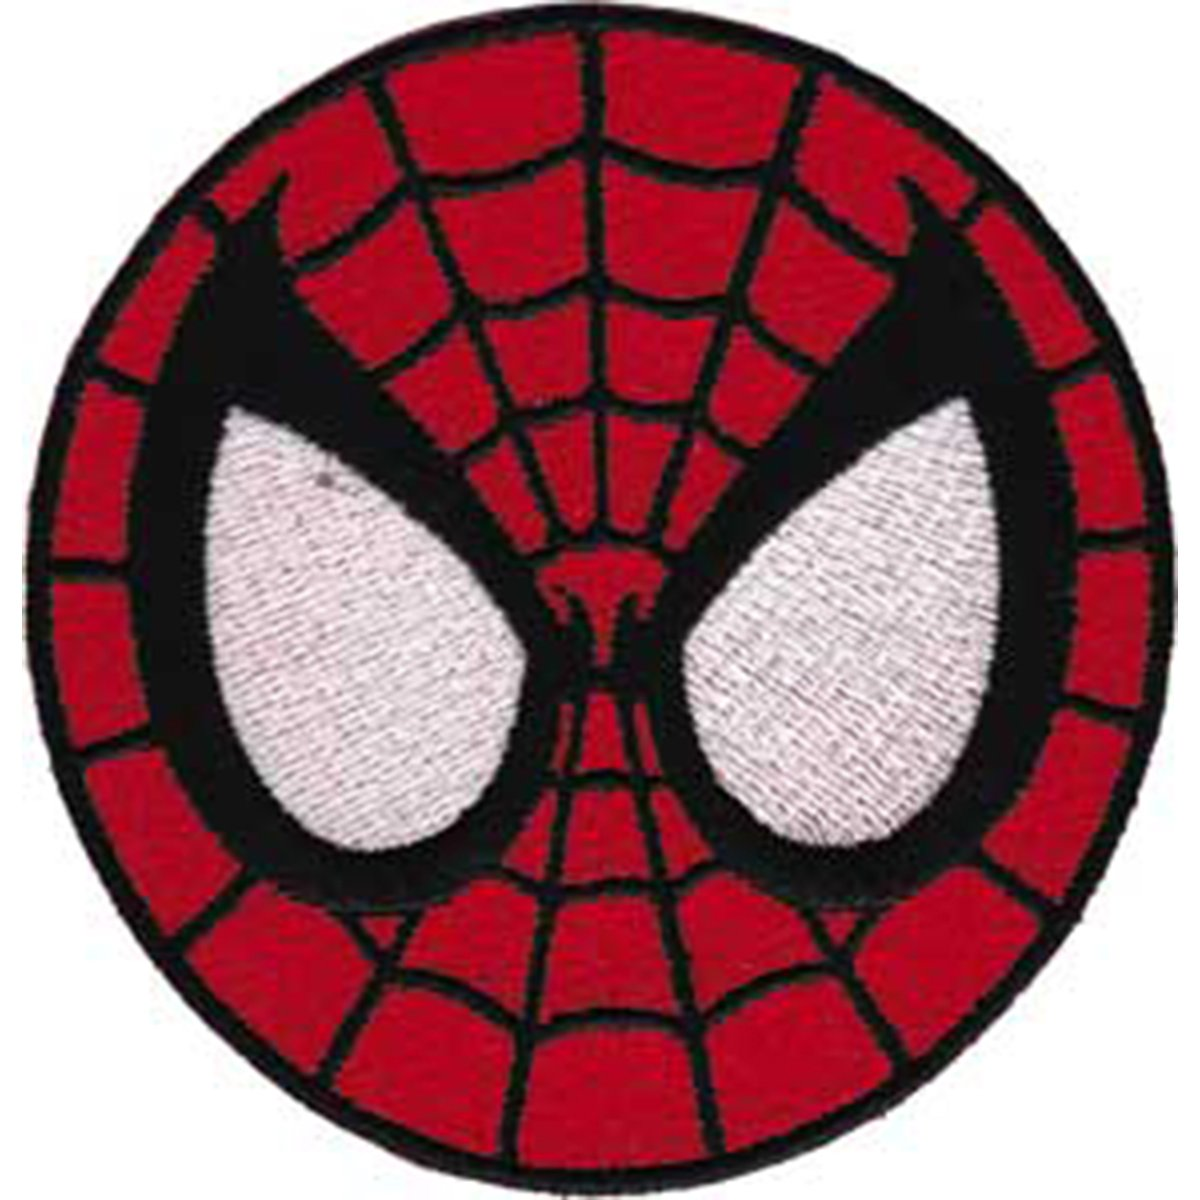 Spiderman Application Aplicación Mask Patch,Parche Officially Oficialmente Licensed Autorizado Marvel Comics Superhero Artwork,Ilustraciones Iron-On/Sew-On, ...